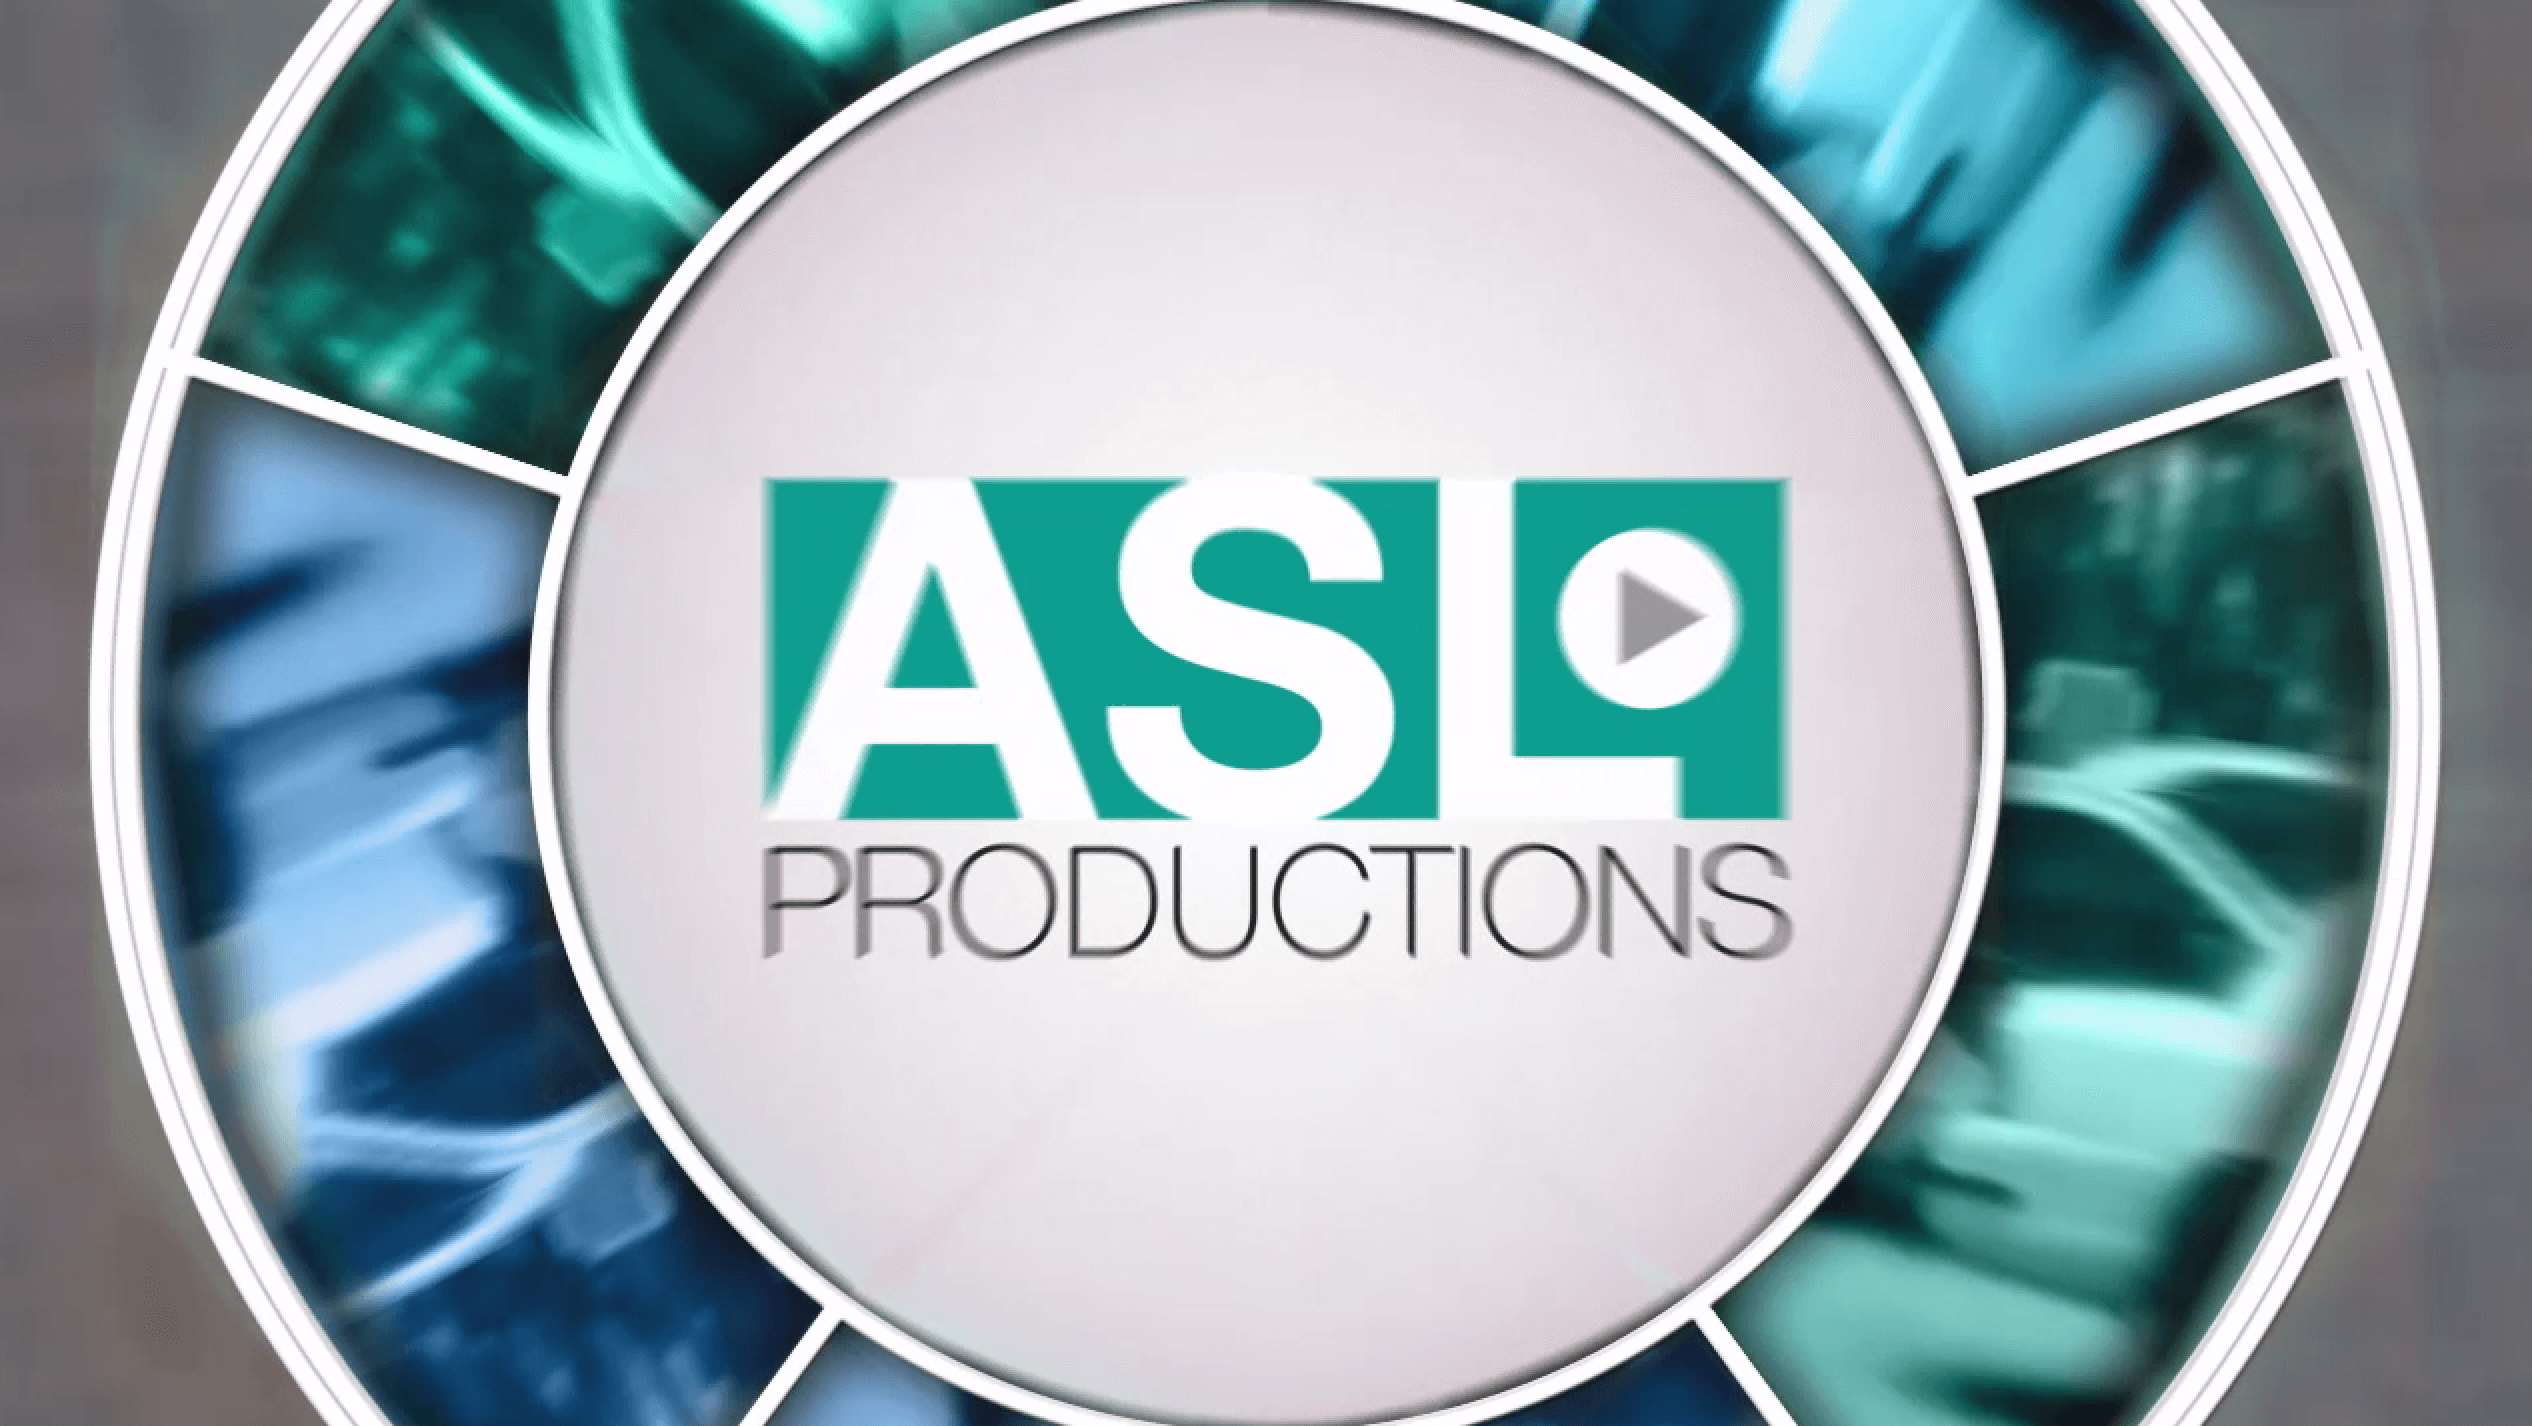 Reasons to Use ASL Productions for Your Video Needs: 1-4